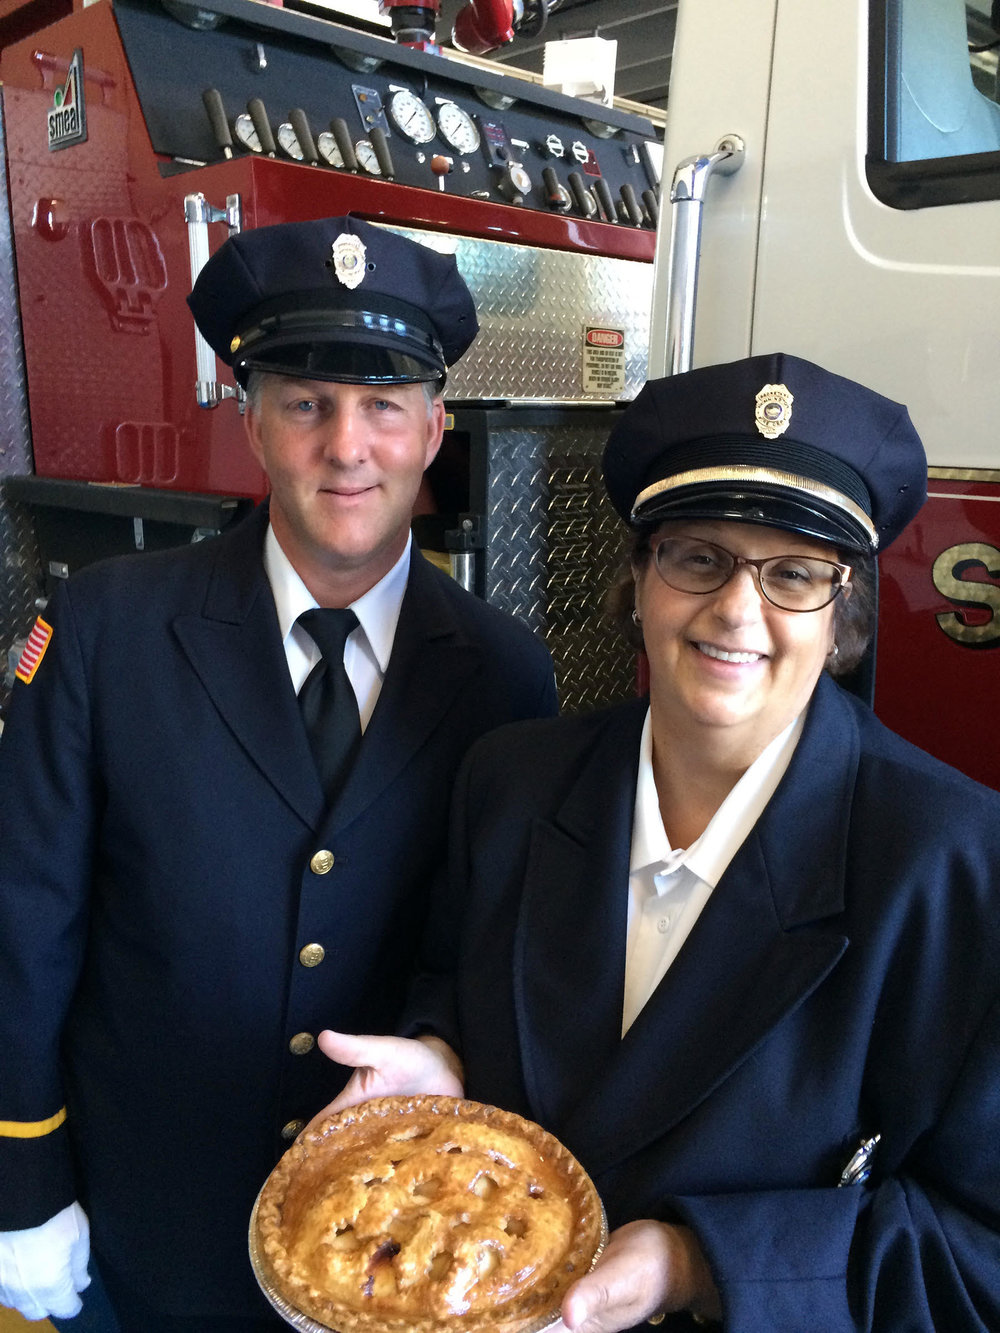 Bill Clark and Mary Crawford of the Bennington Fire Department invite the community to the  Battle of the Pies  event on August 18th as part of the Battle Day Celebrations.